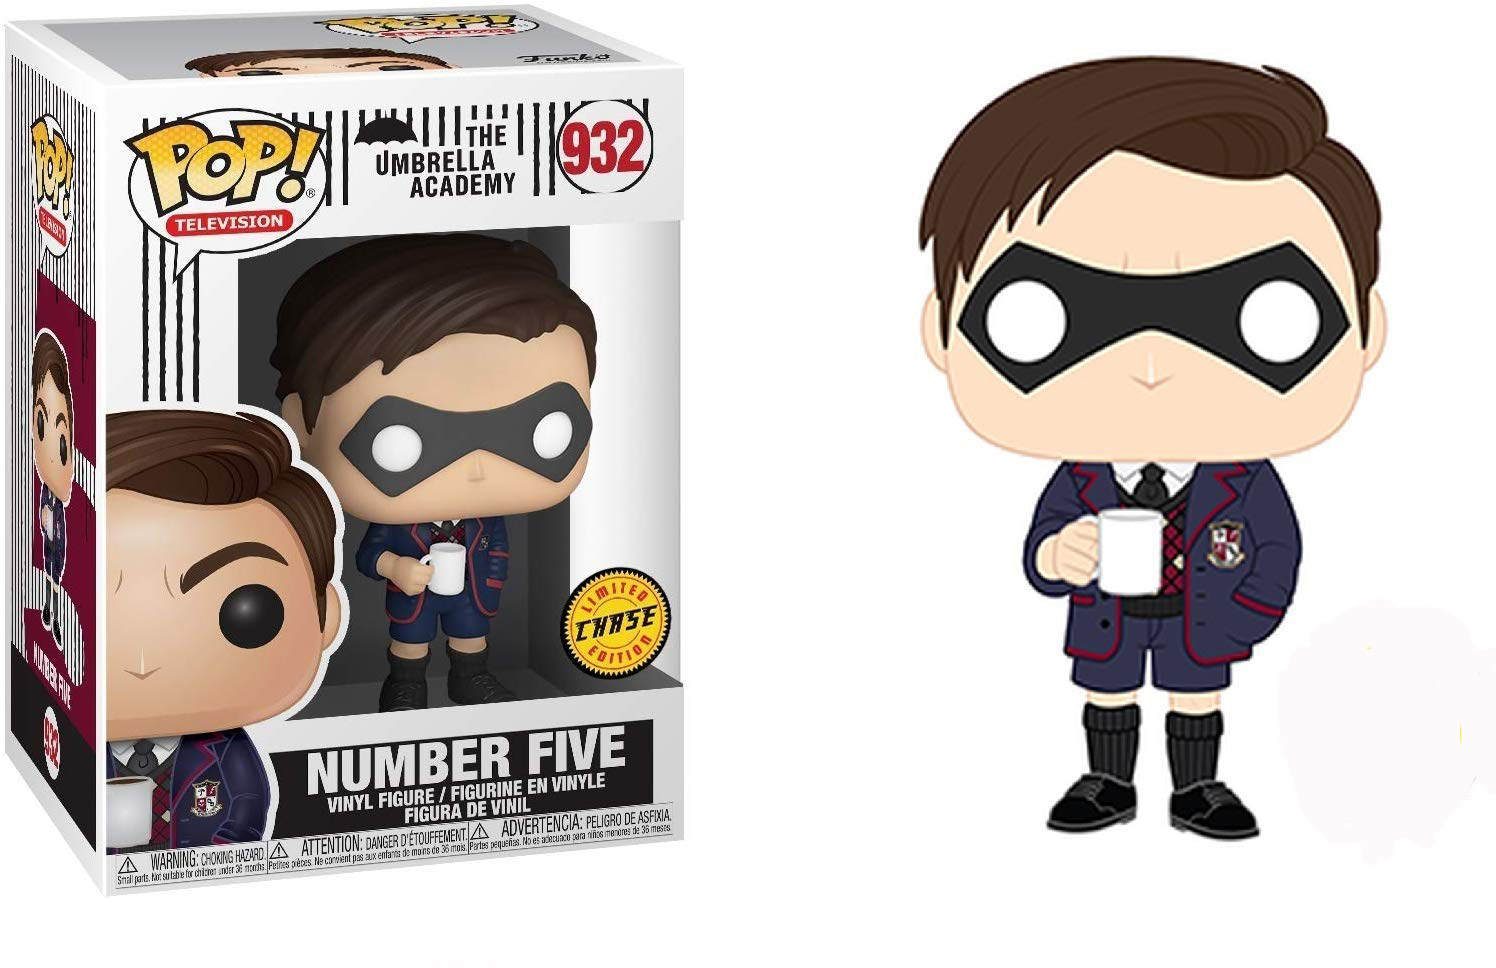 The Umbrella Academy Number Five Pop! Vinyl Figure